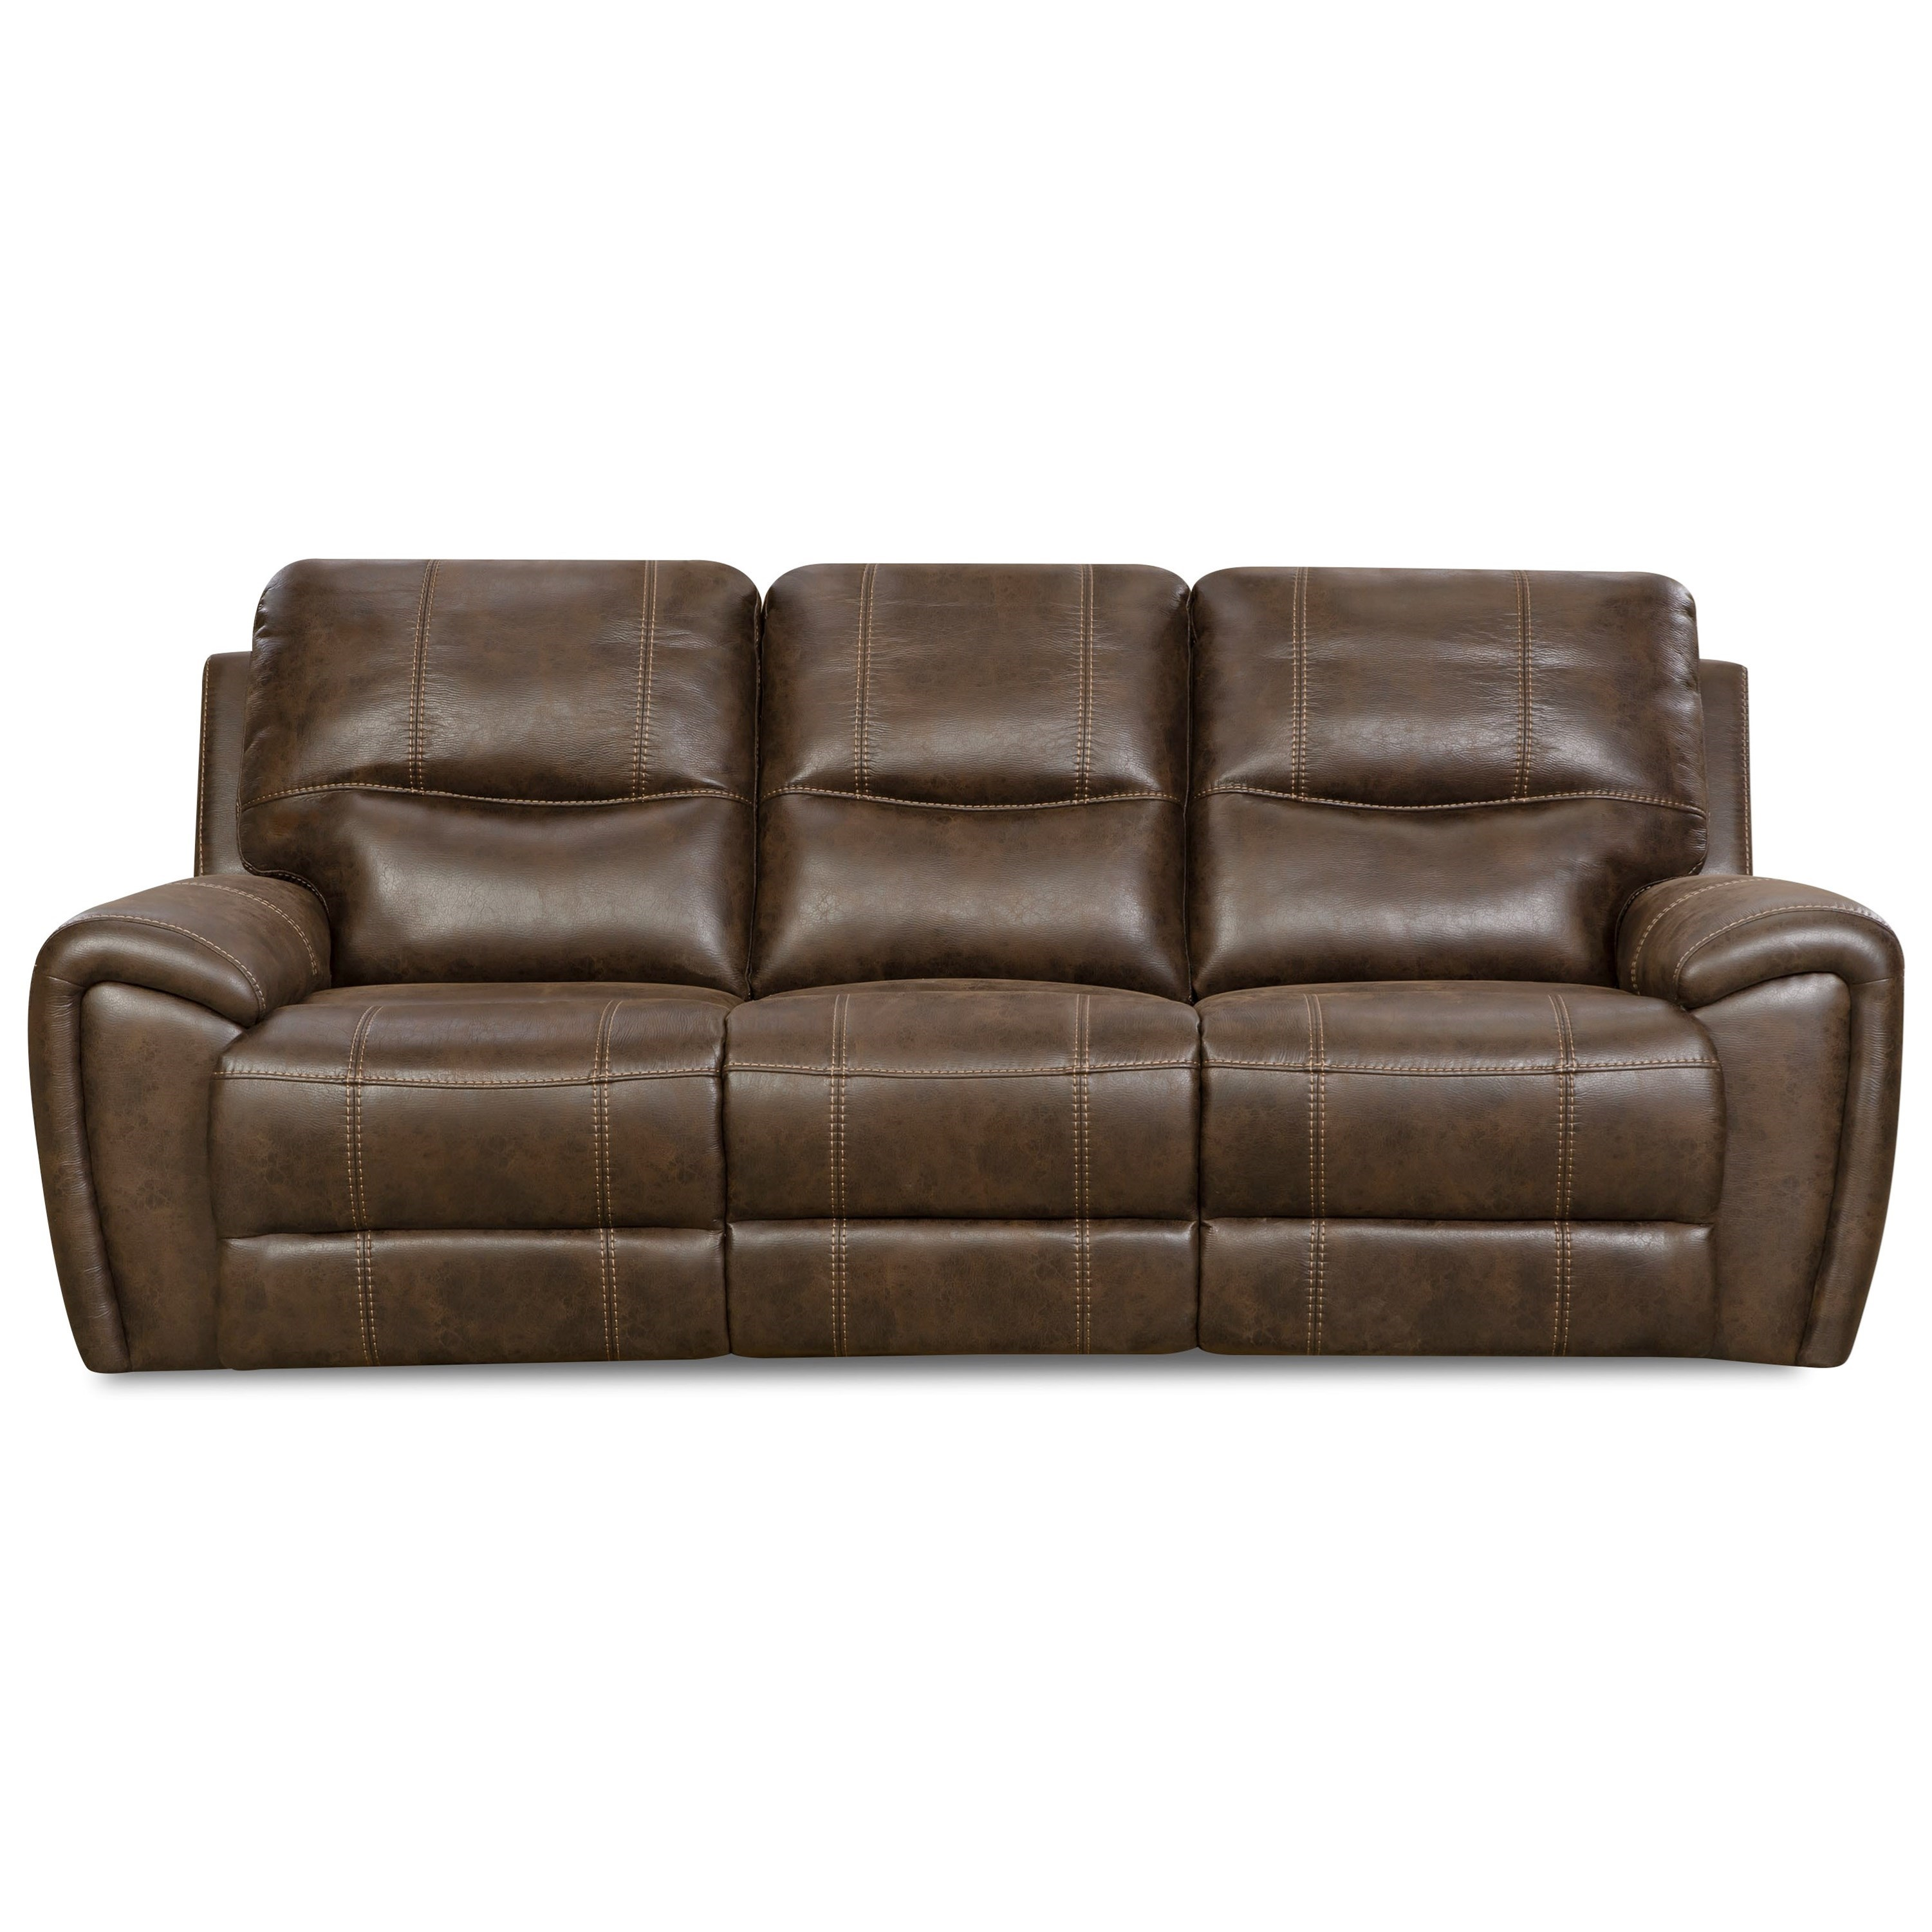 VFM Signature 91001 Power Reclining Sofa - Item Number: FGC91001-30 Made-Out